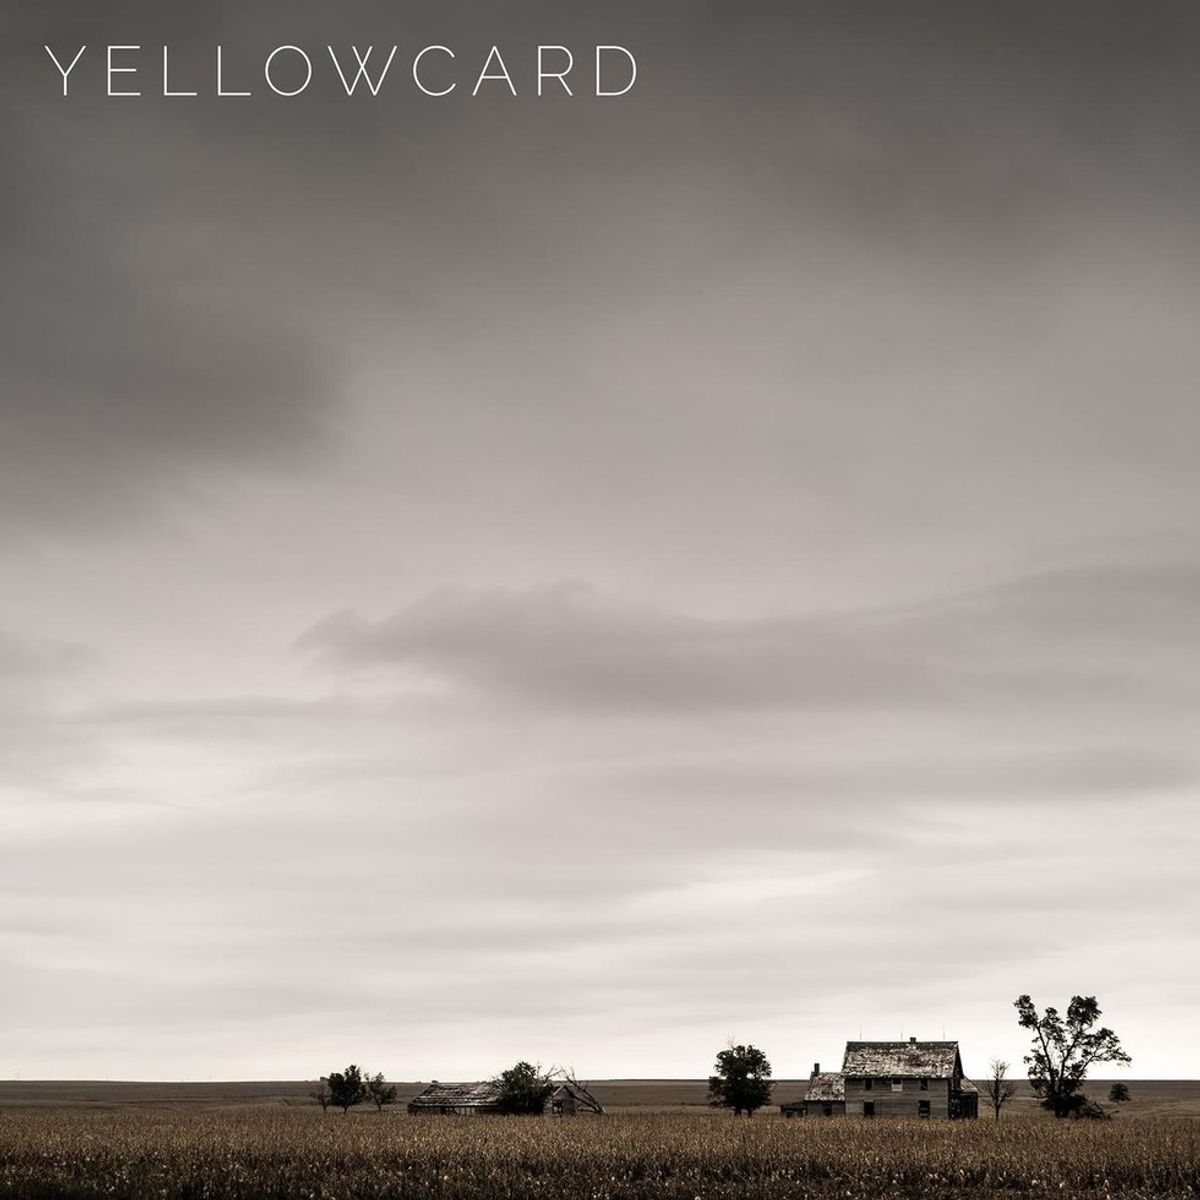 What We Can Expect From Yellowcard's Last Album